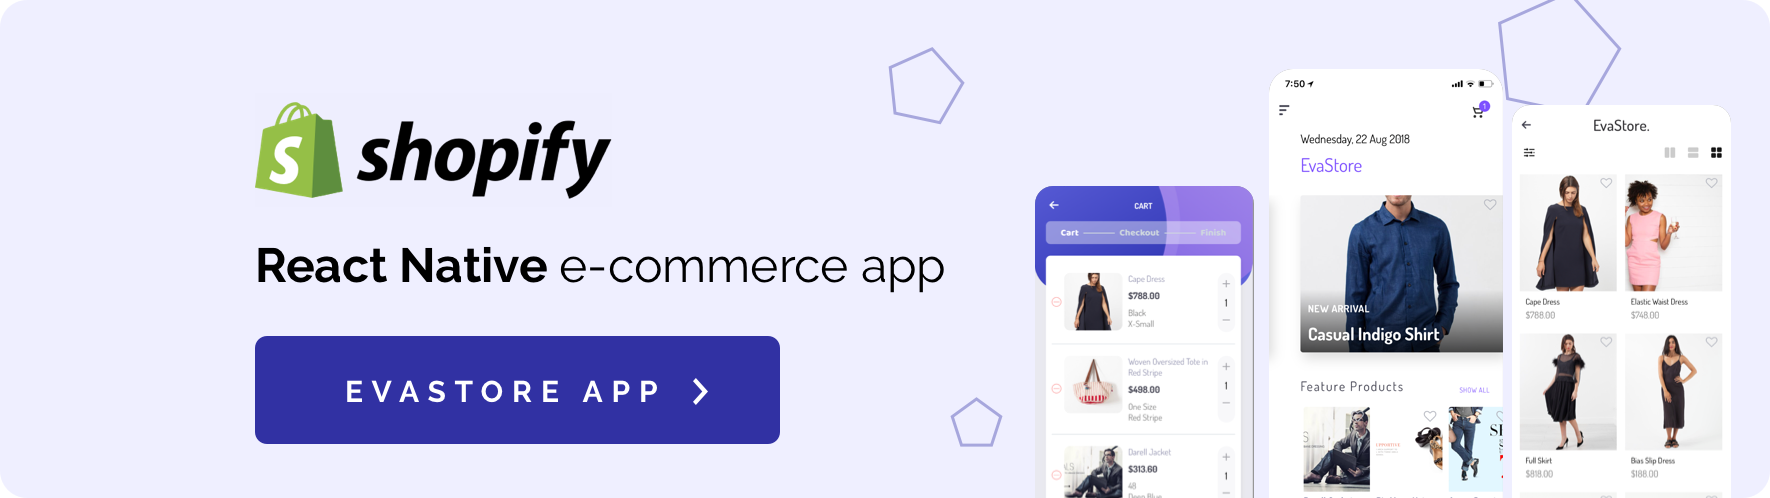 Fluxstore Multi Vendor - Flutter E-commerce Full App - 32